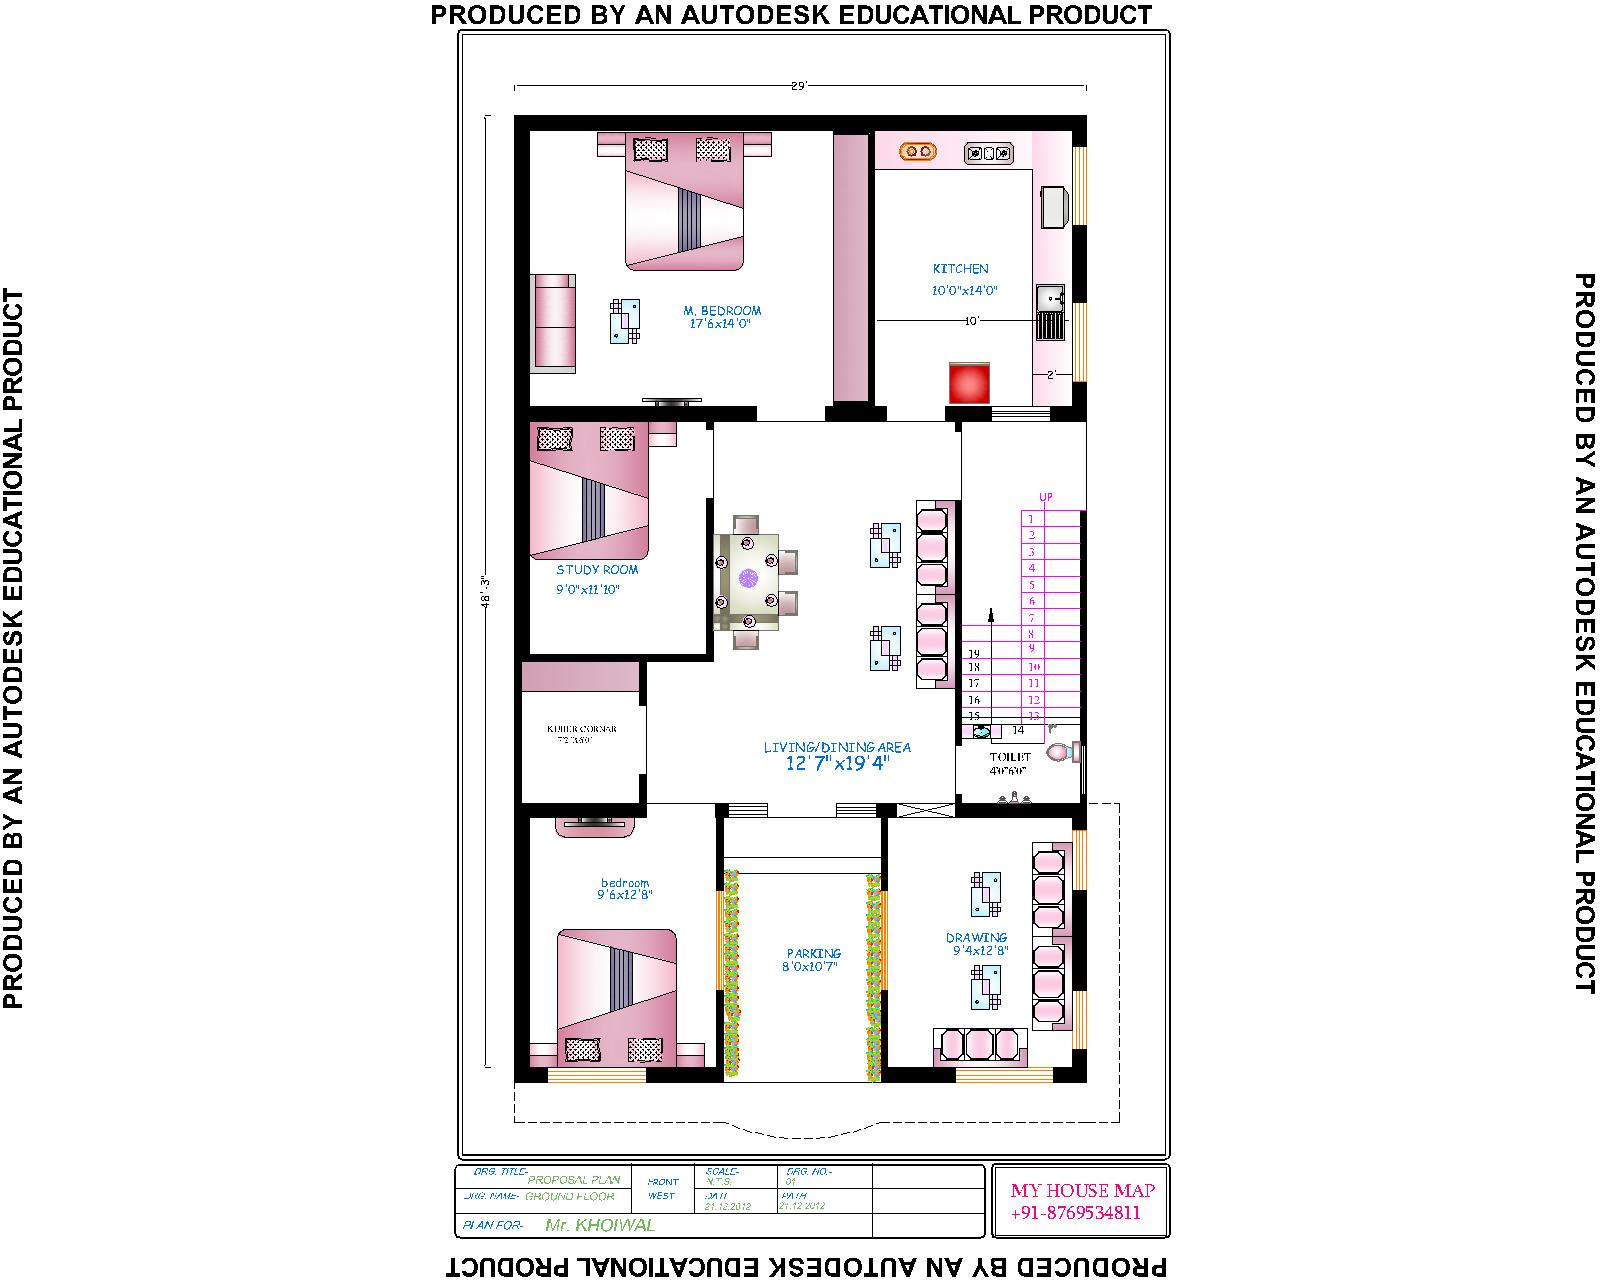 My house map house map india for Home map design free layout plan in india